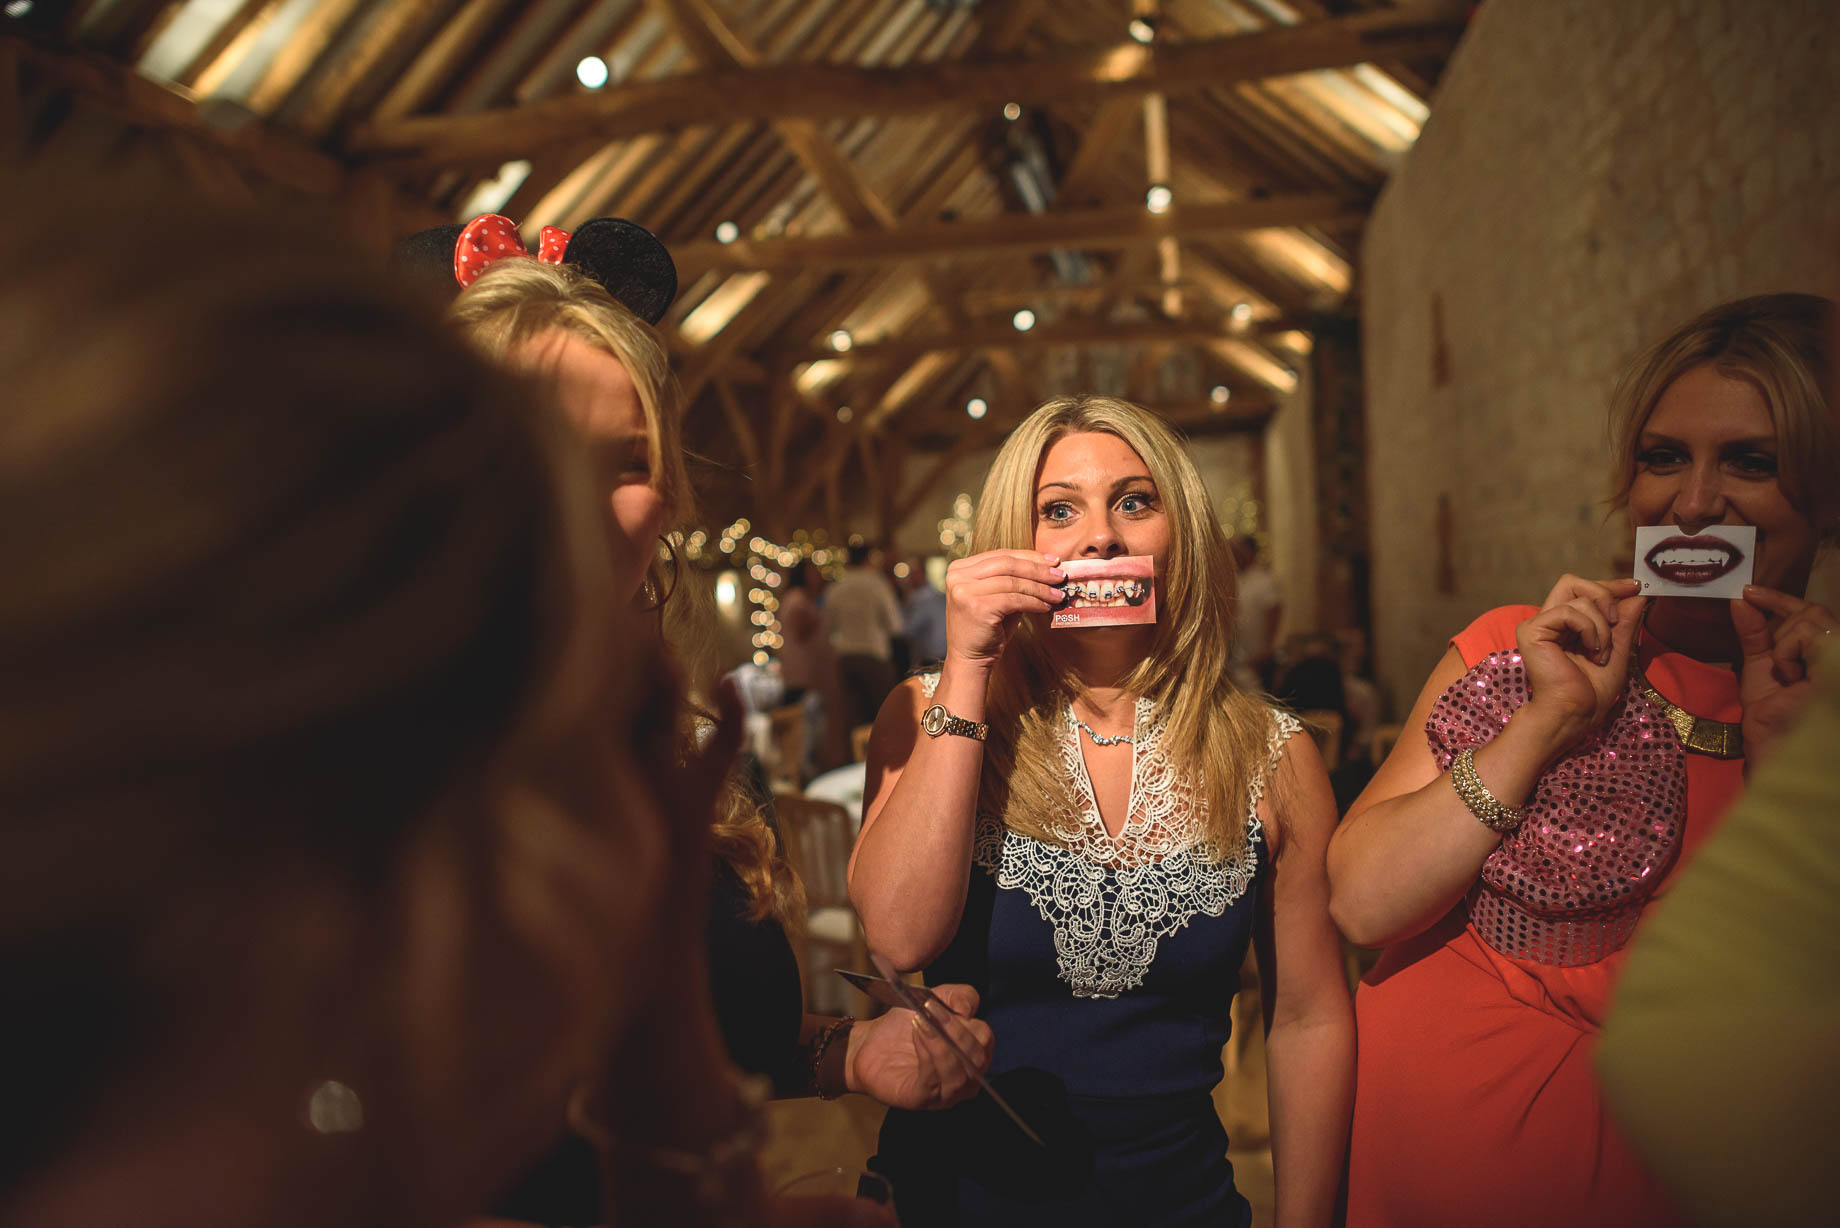 Bury Court Barn wedding photography - Guy Collier - Kate and Russ (178 of 187)